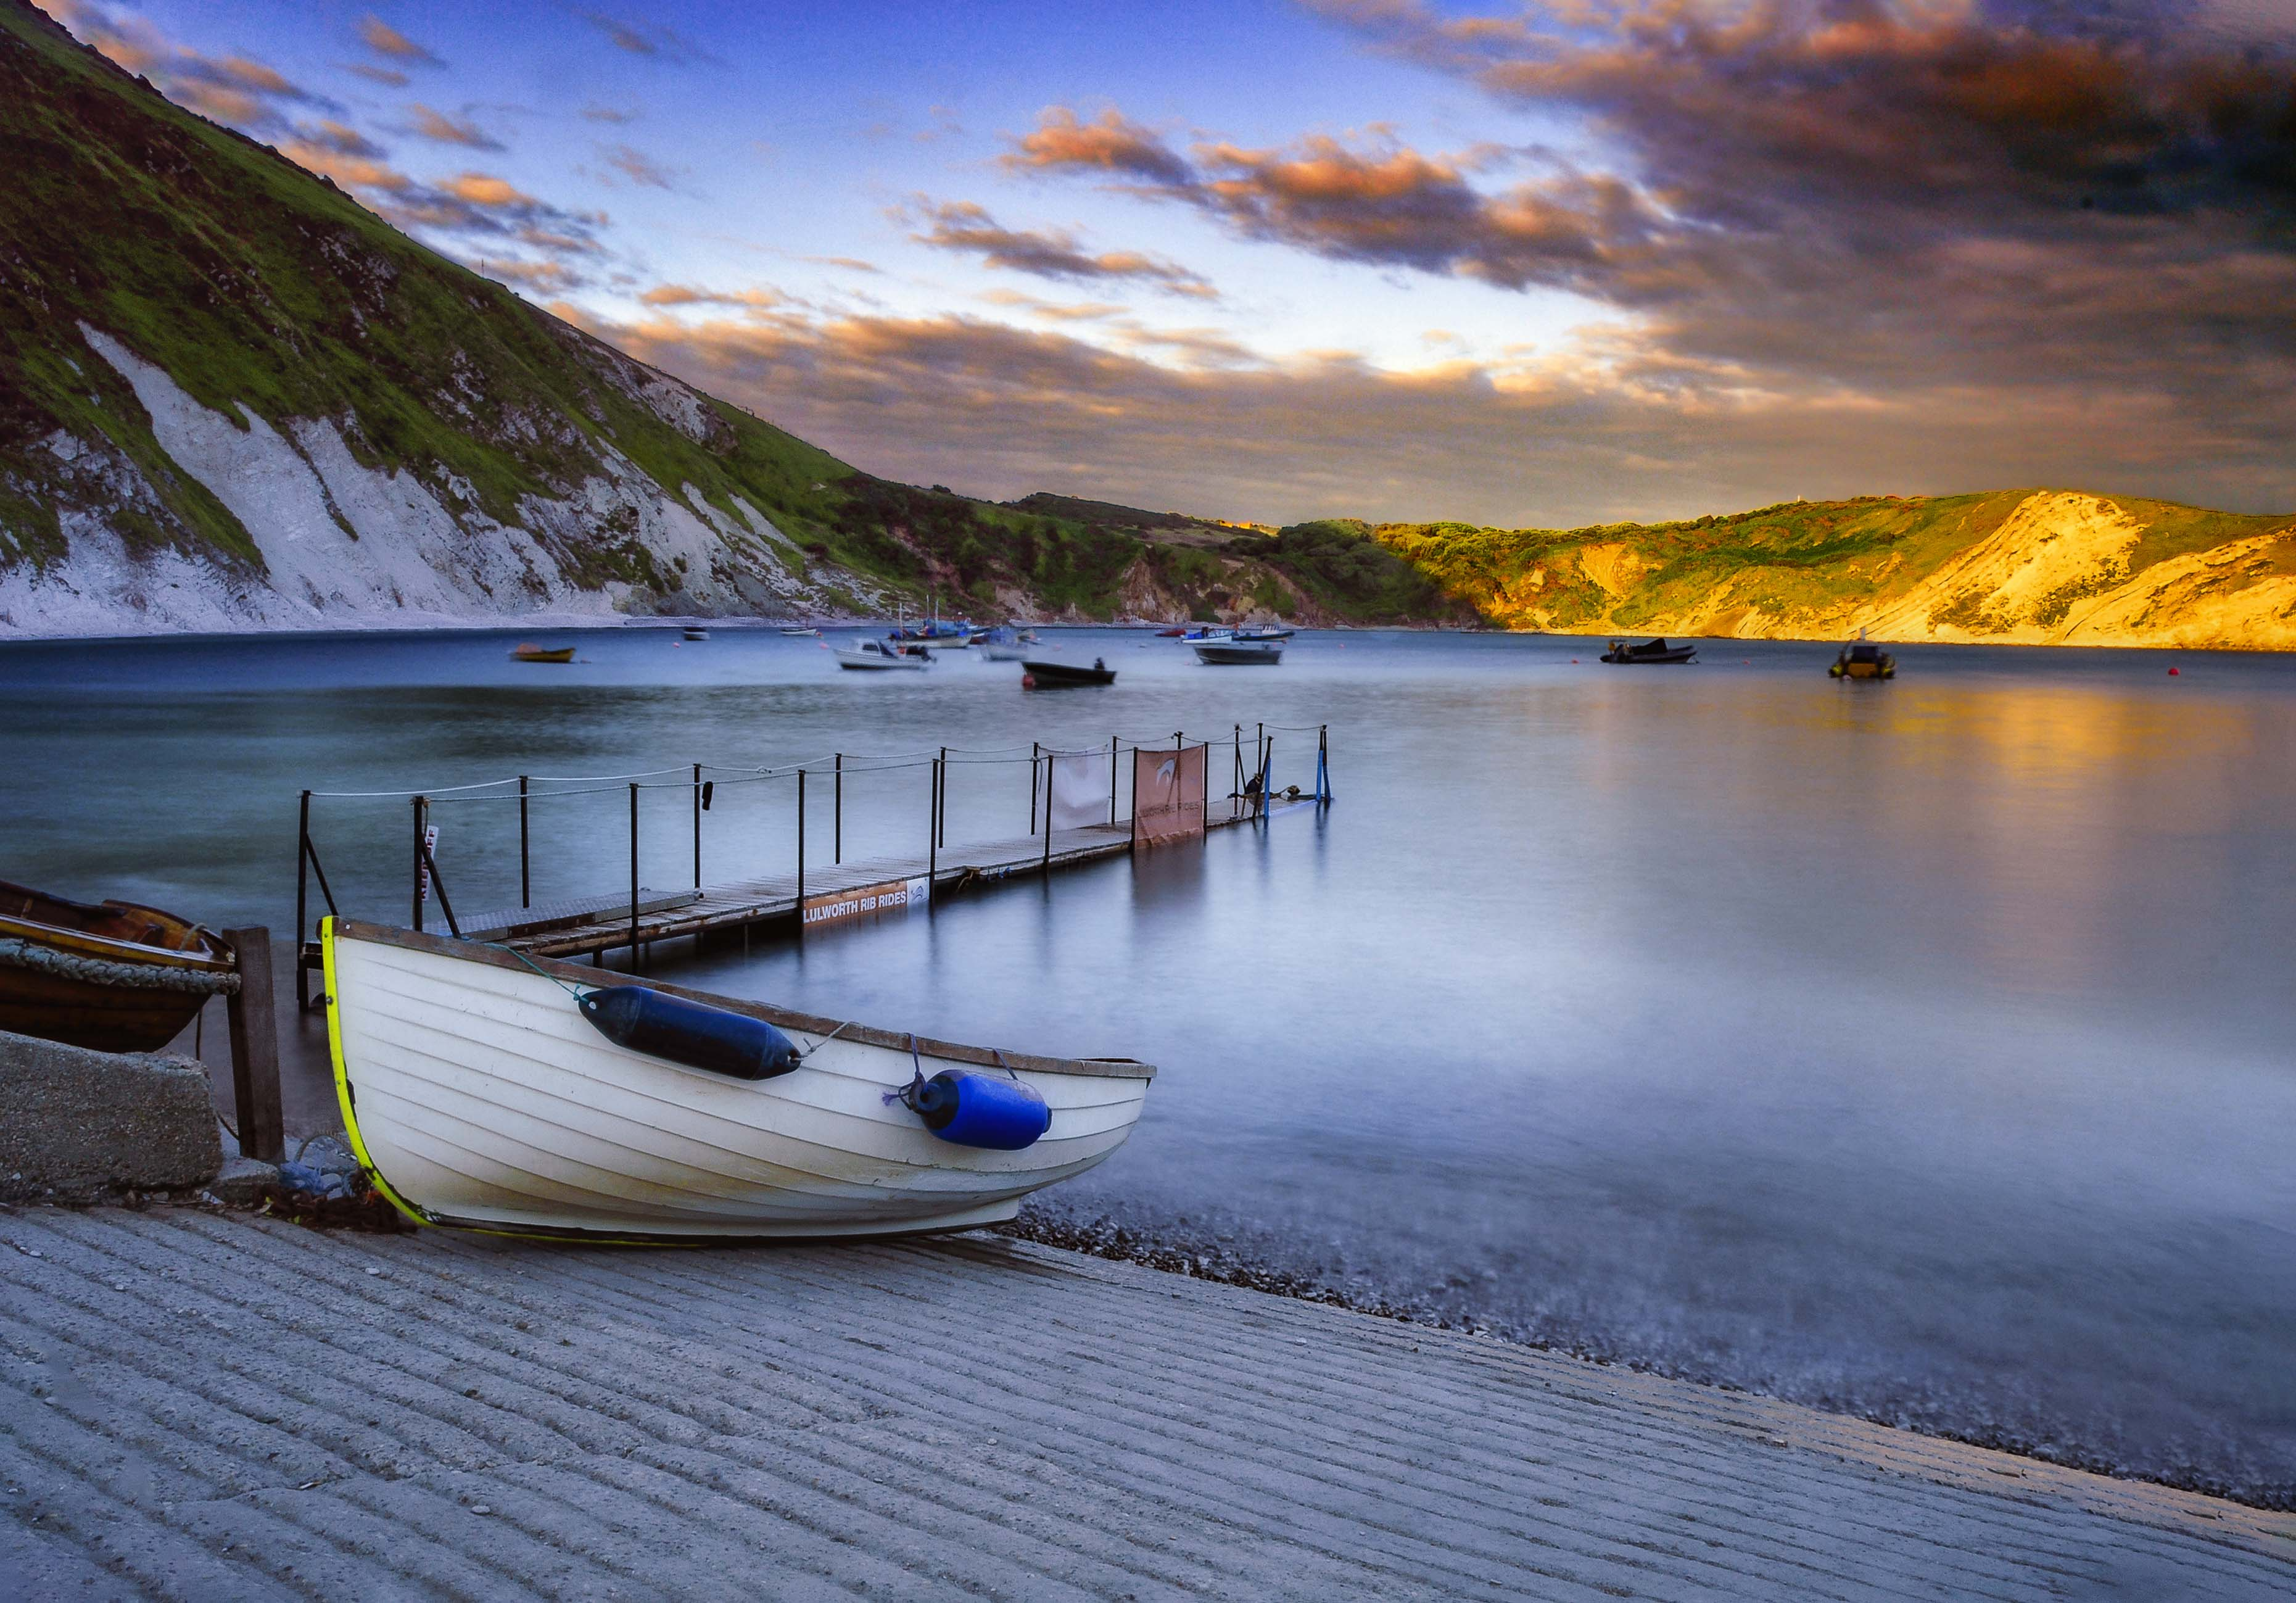 England - Lulworth Cove